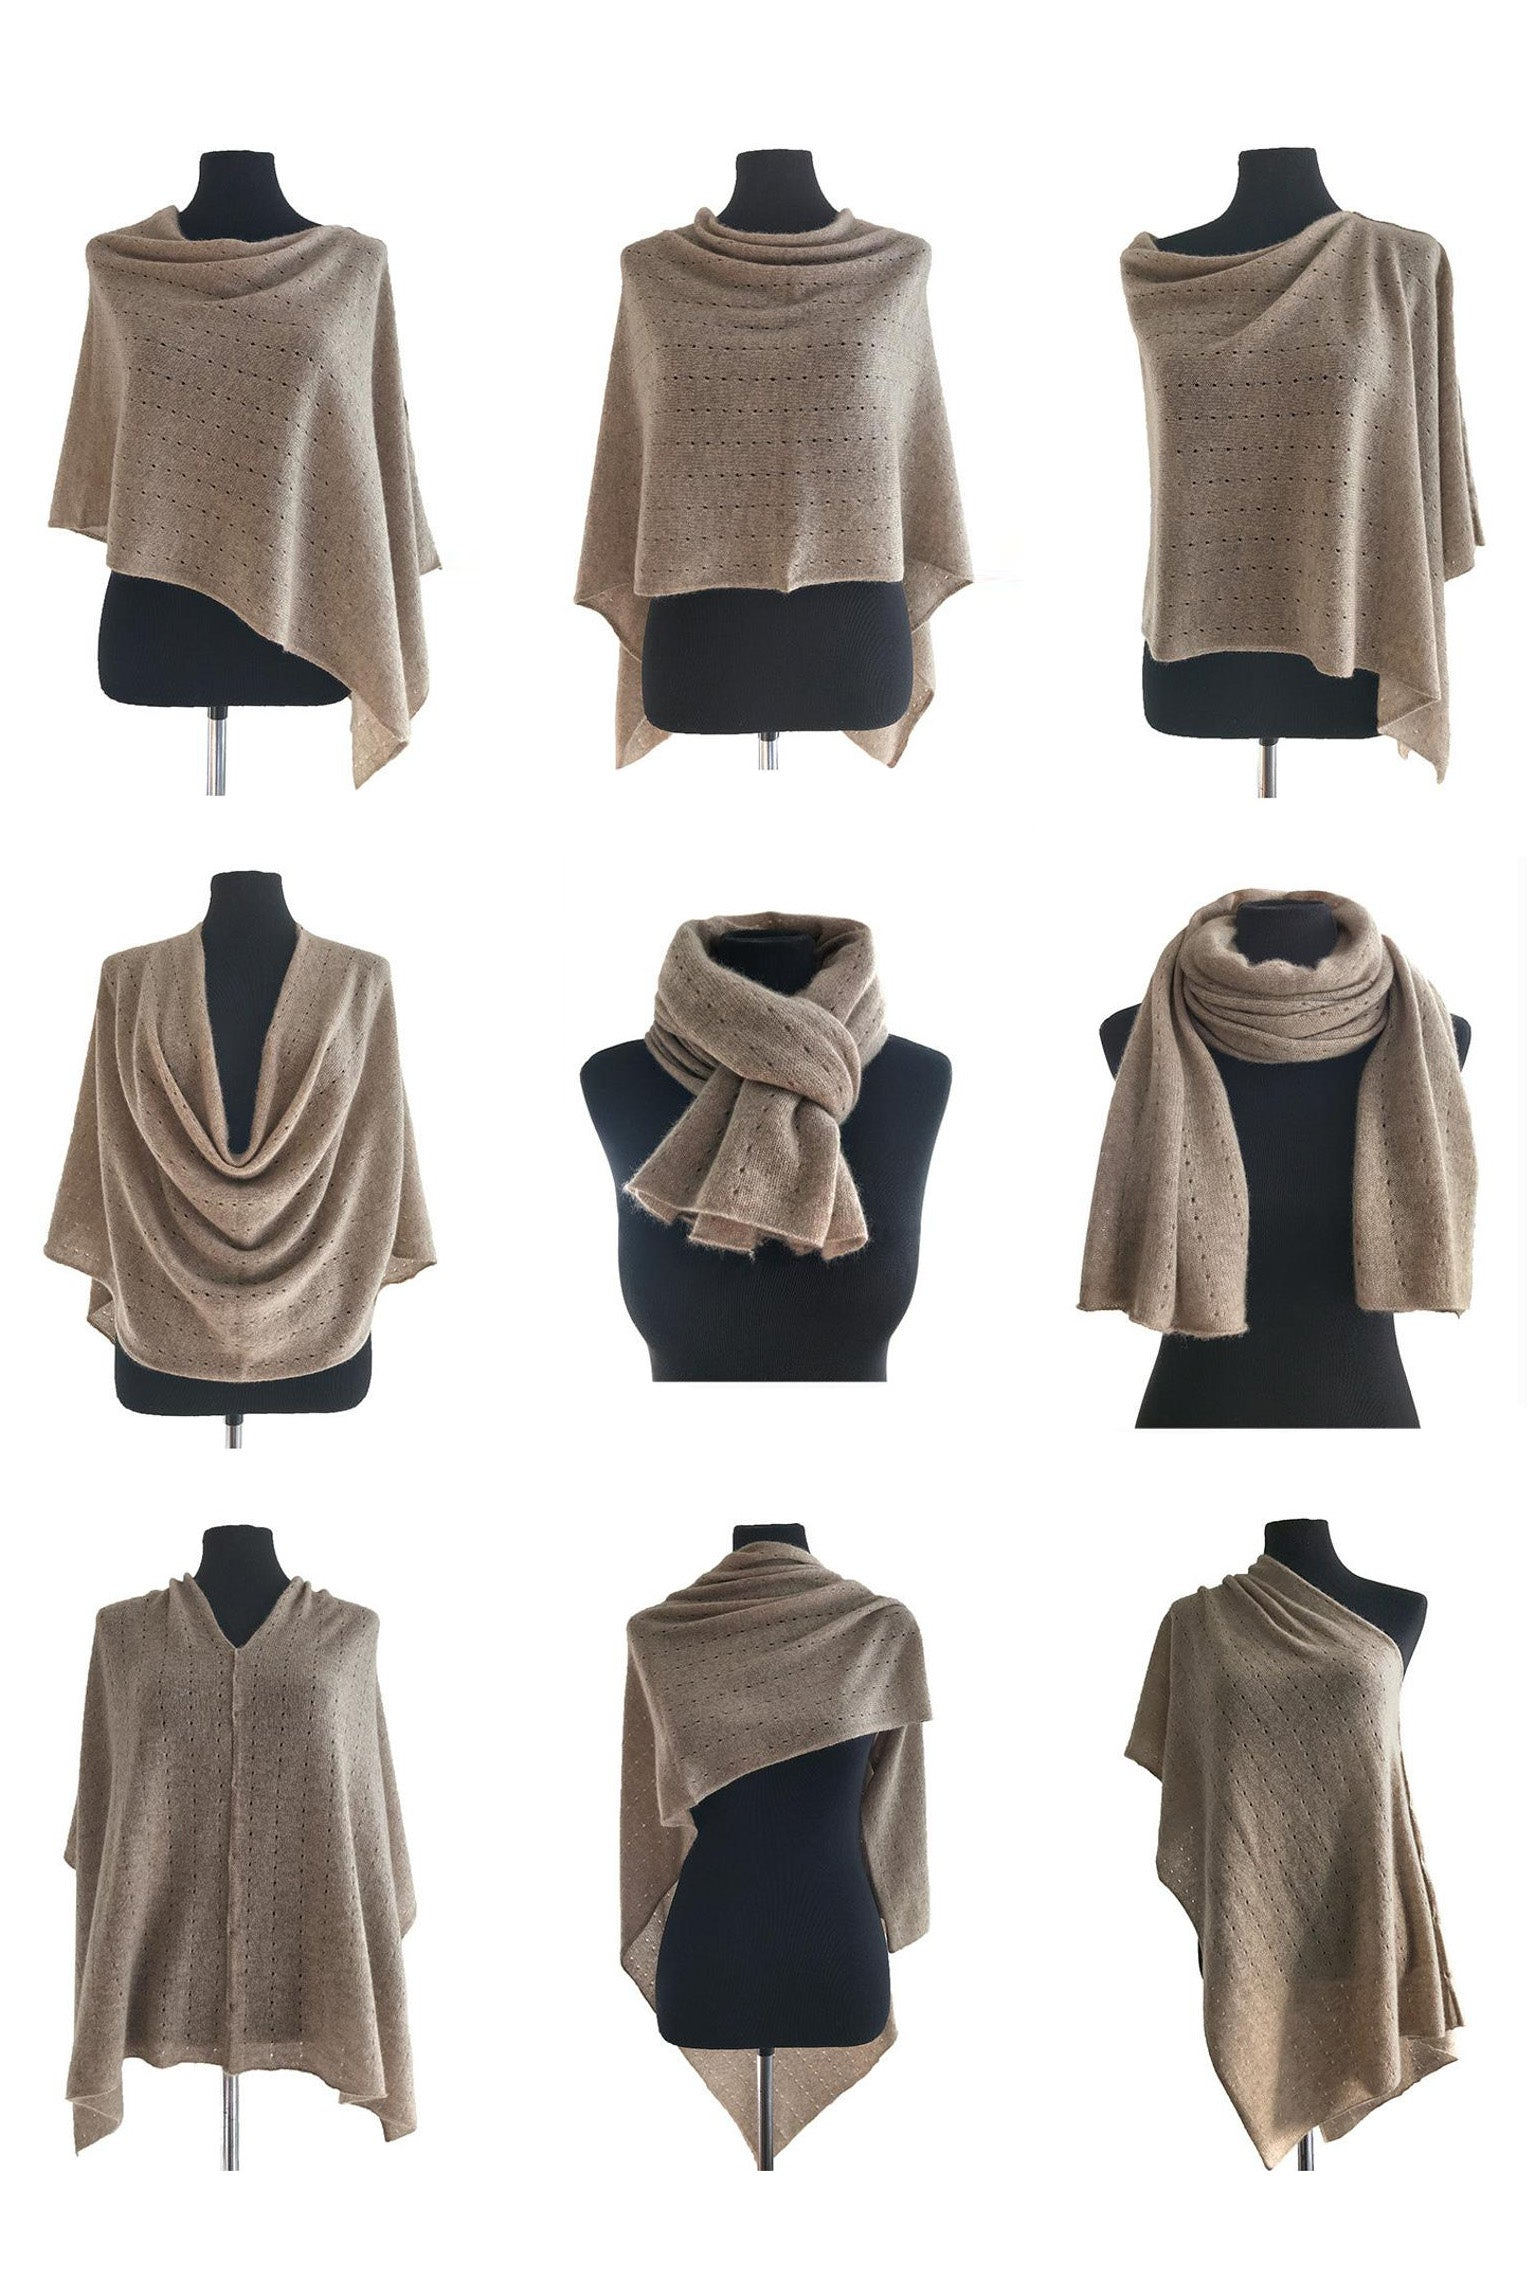 Multiwear Cashmere Poncho in Camel